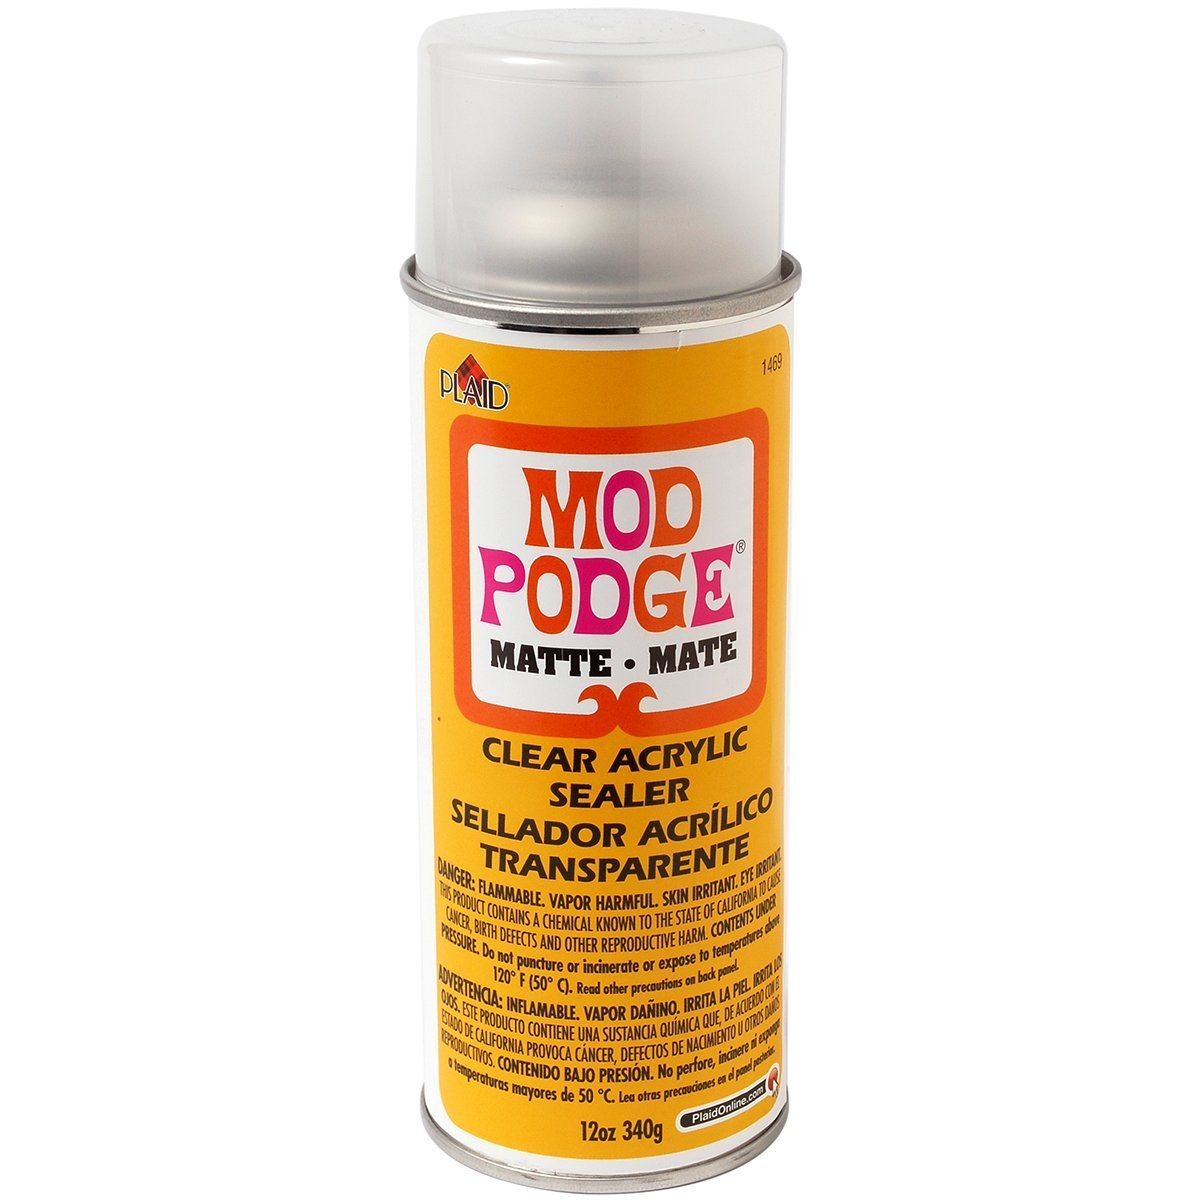 Mod Podge Clear Acrylic Sealer (12-Ounce), 1469 Matte 2 Pack